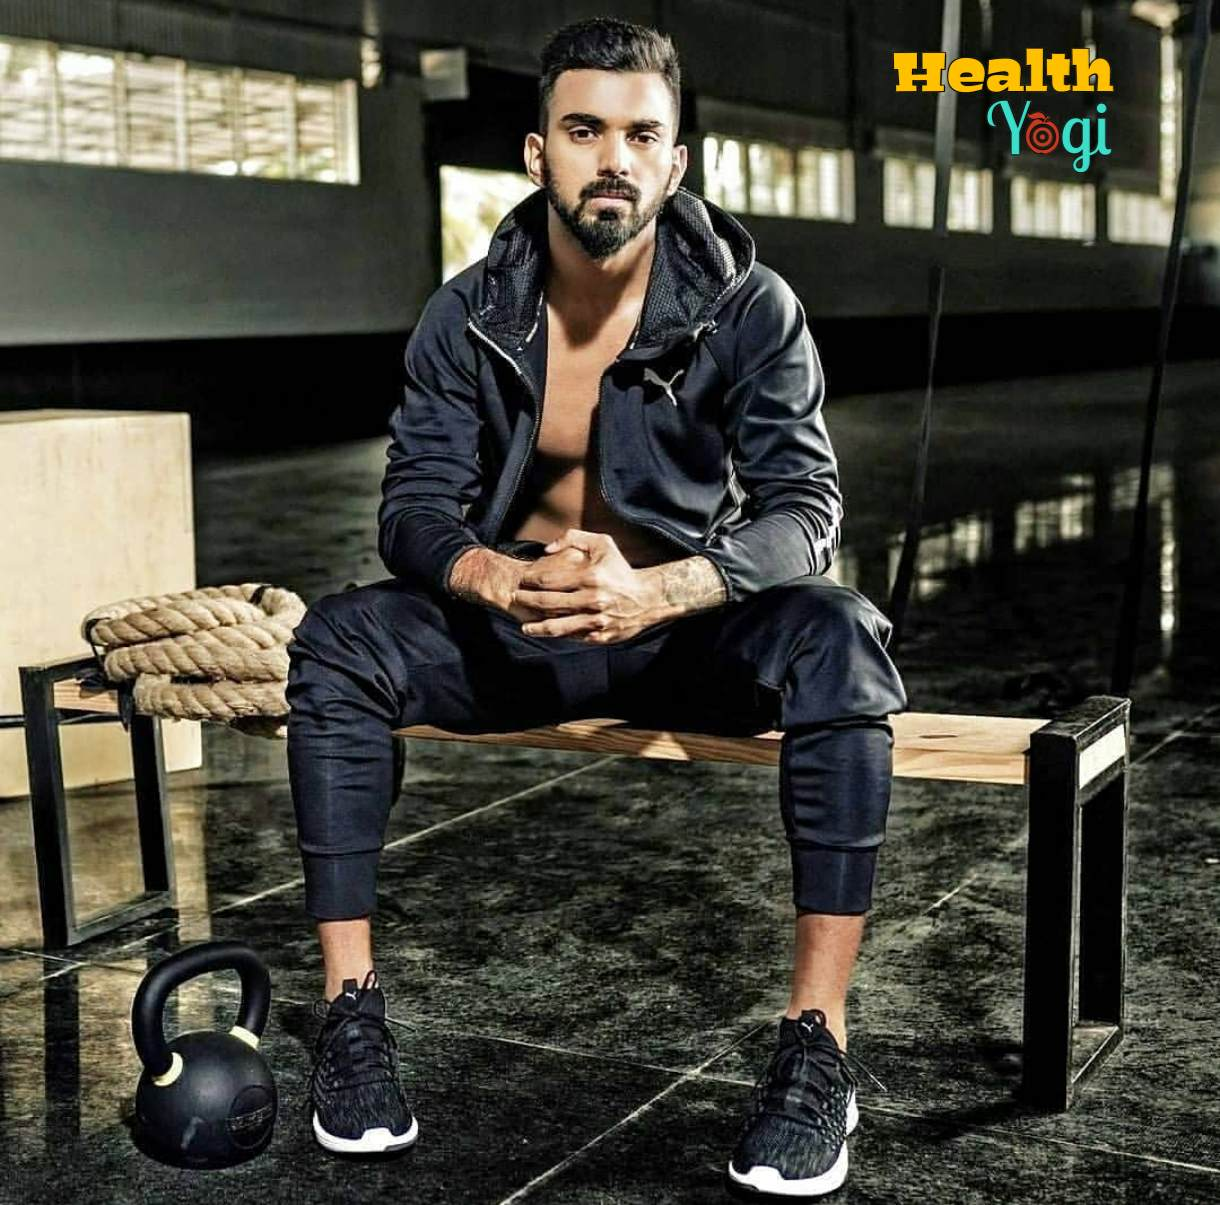 KL Rahul Workout Routine and Diet Plan